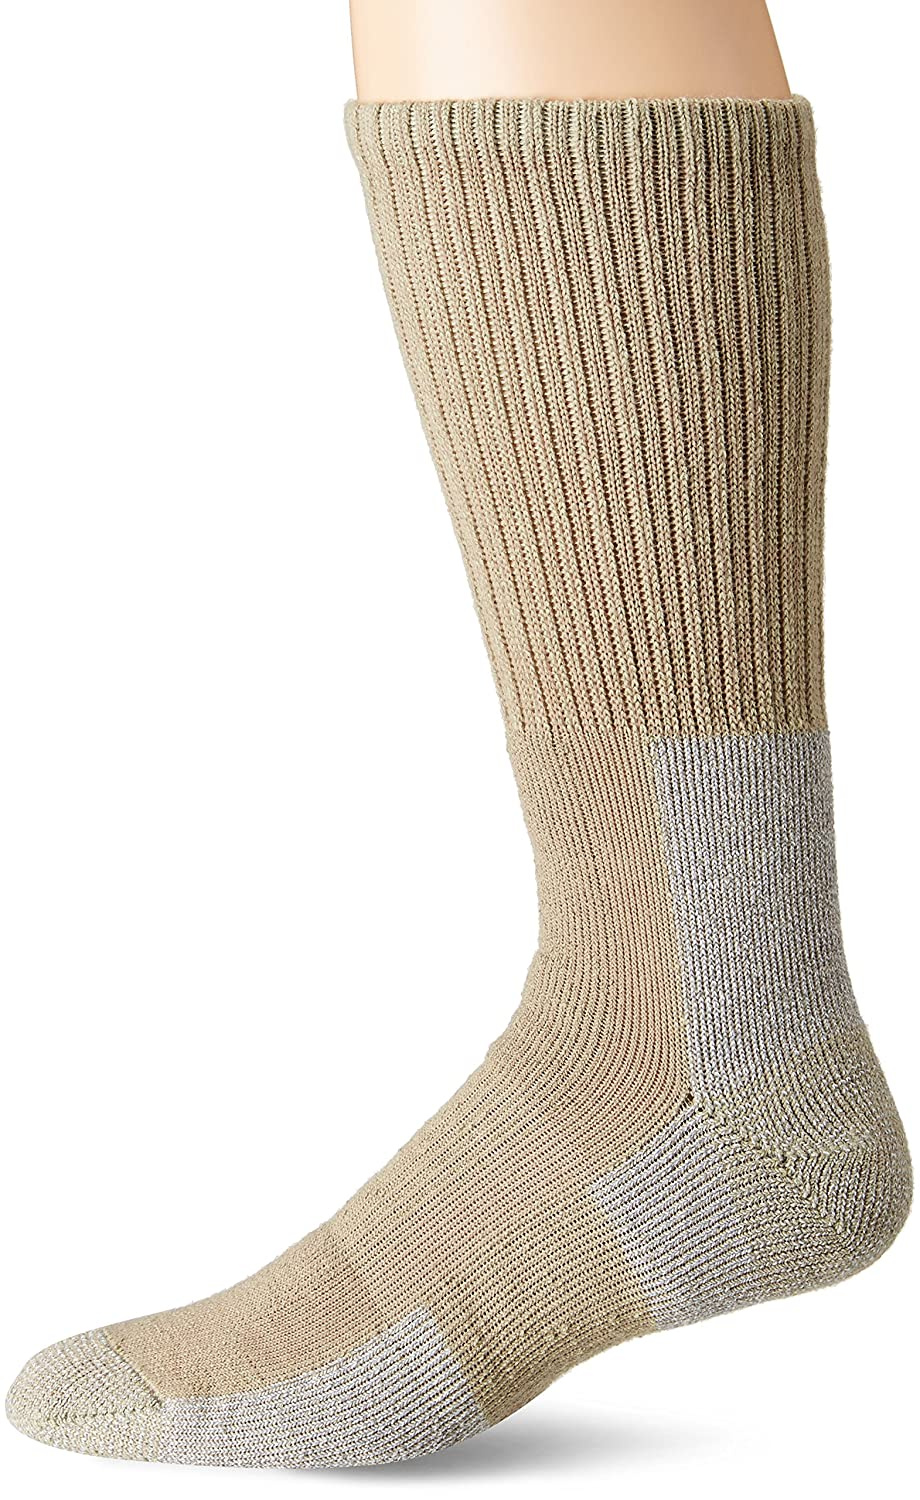 Thorlos Herren Trail Hiking Crew-Socken